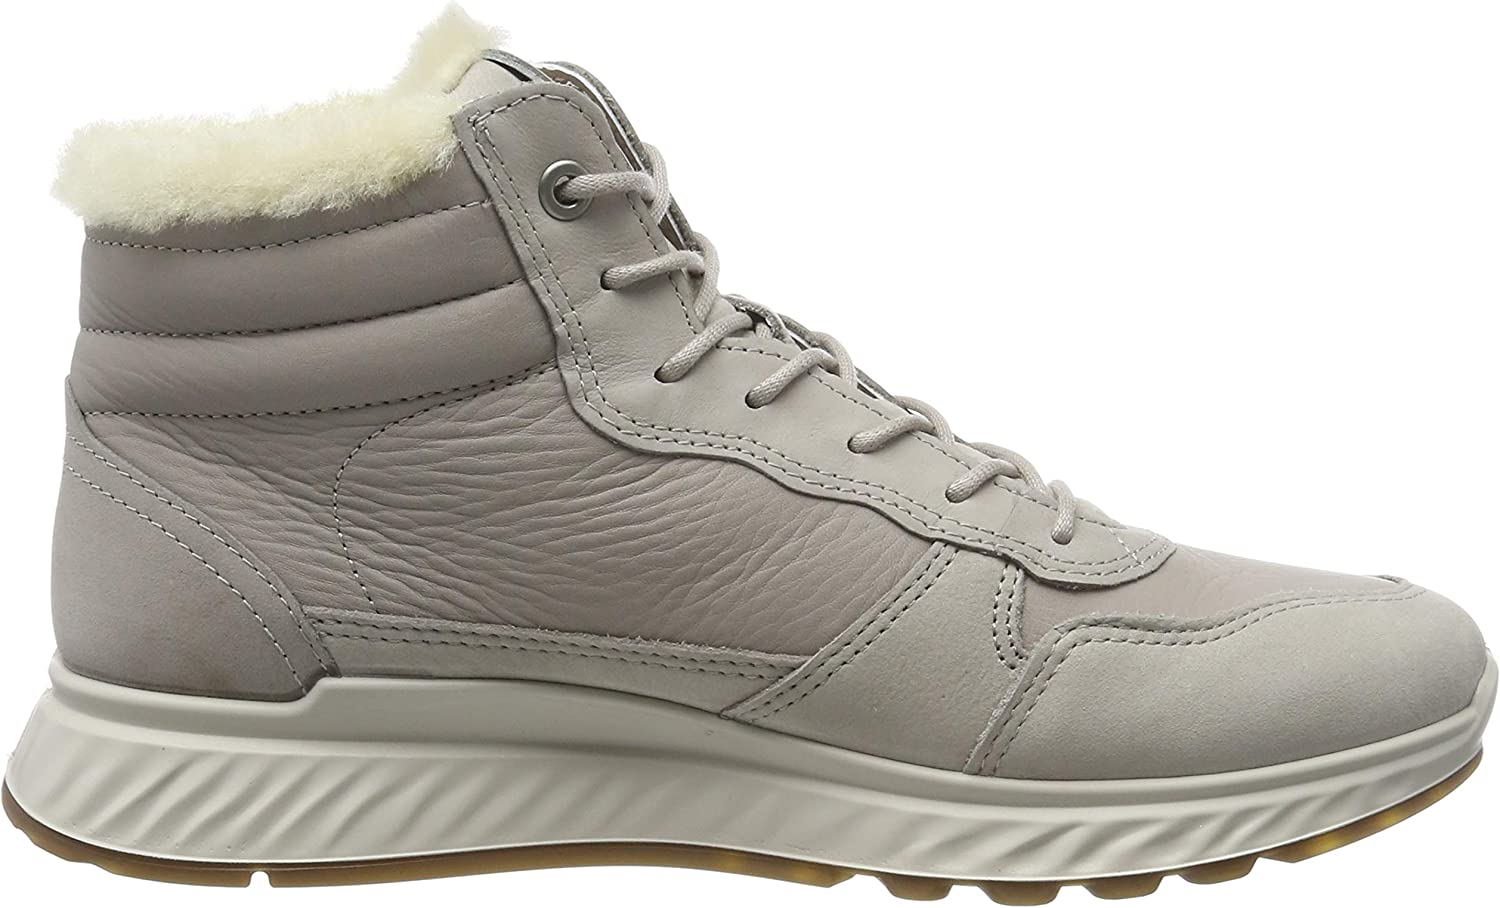 ECCO Womens St.1 Ankle Boot Sneaker